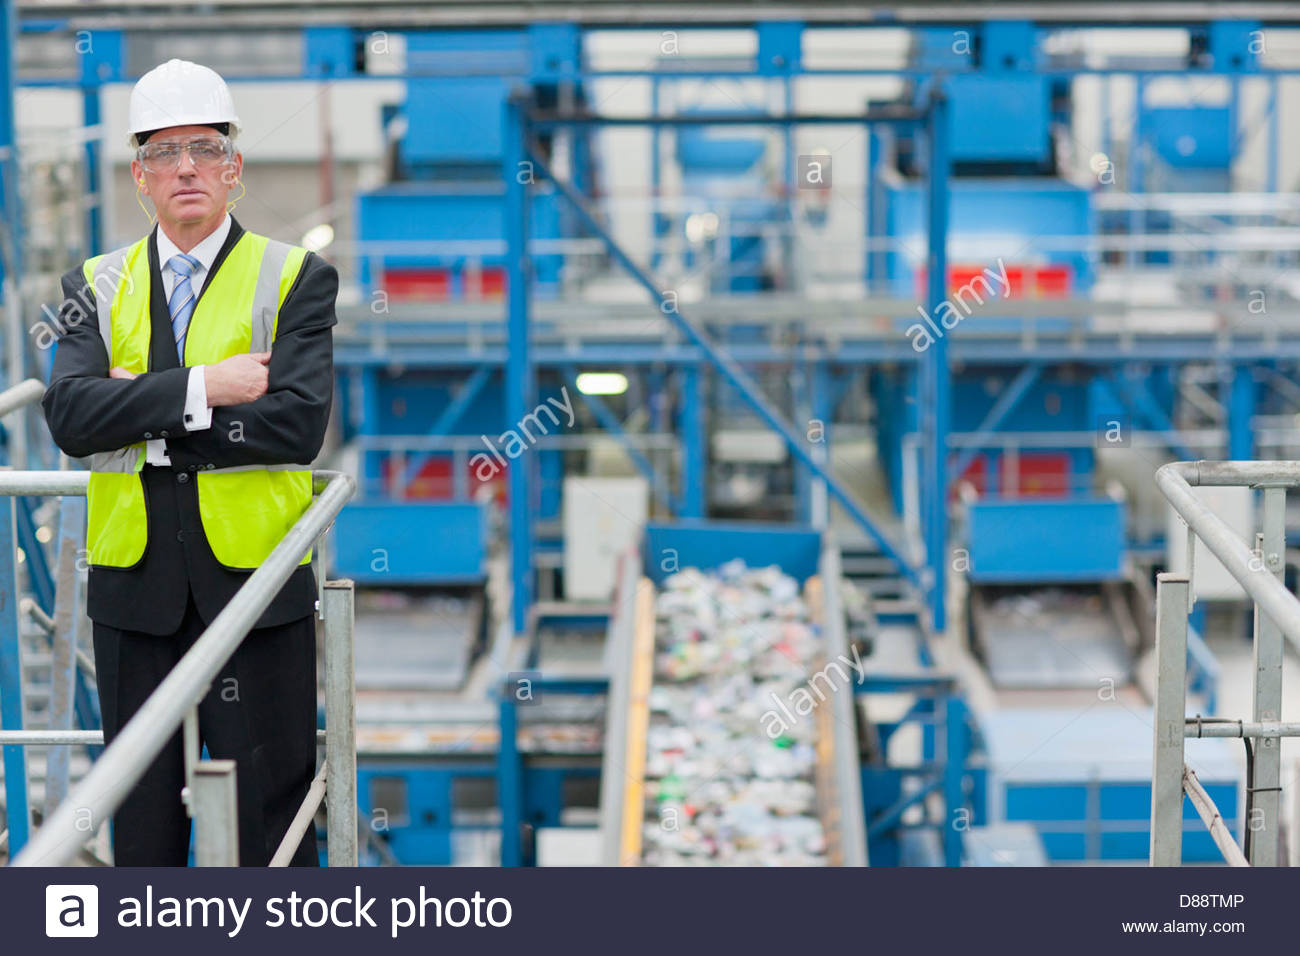 Portrait of serious businessman standing on platform above conveyor belt in recycling plant - Stock Image